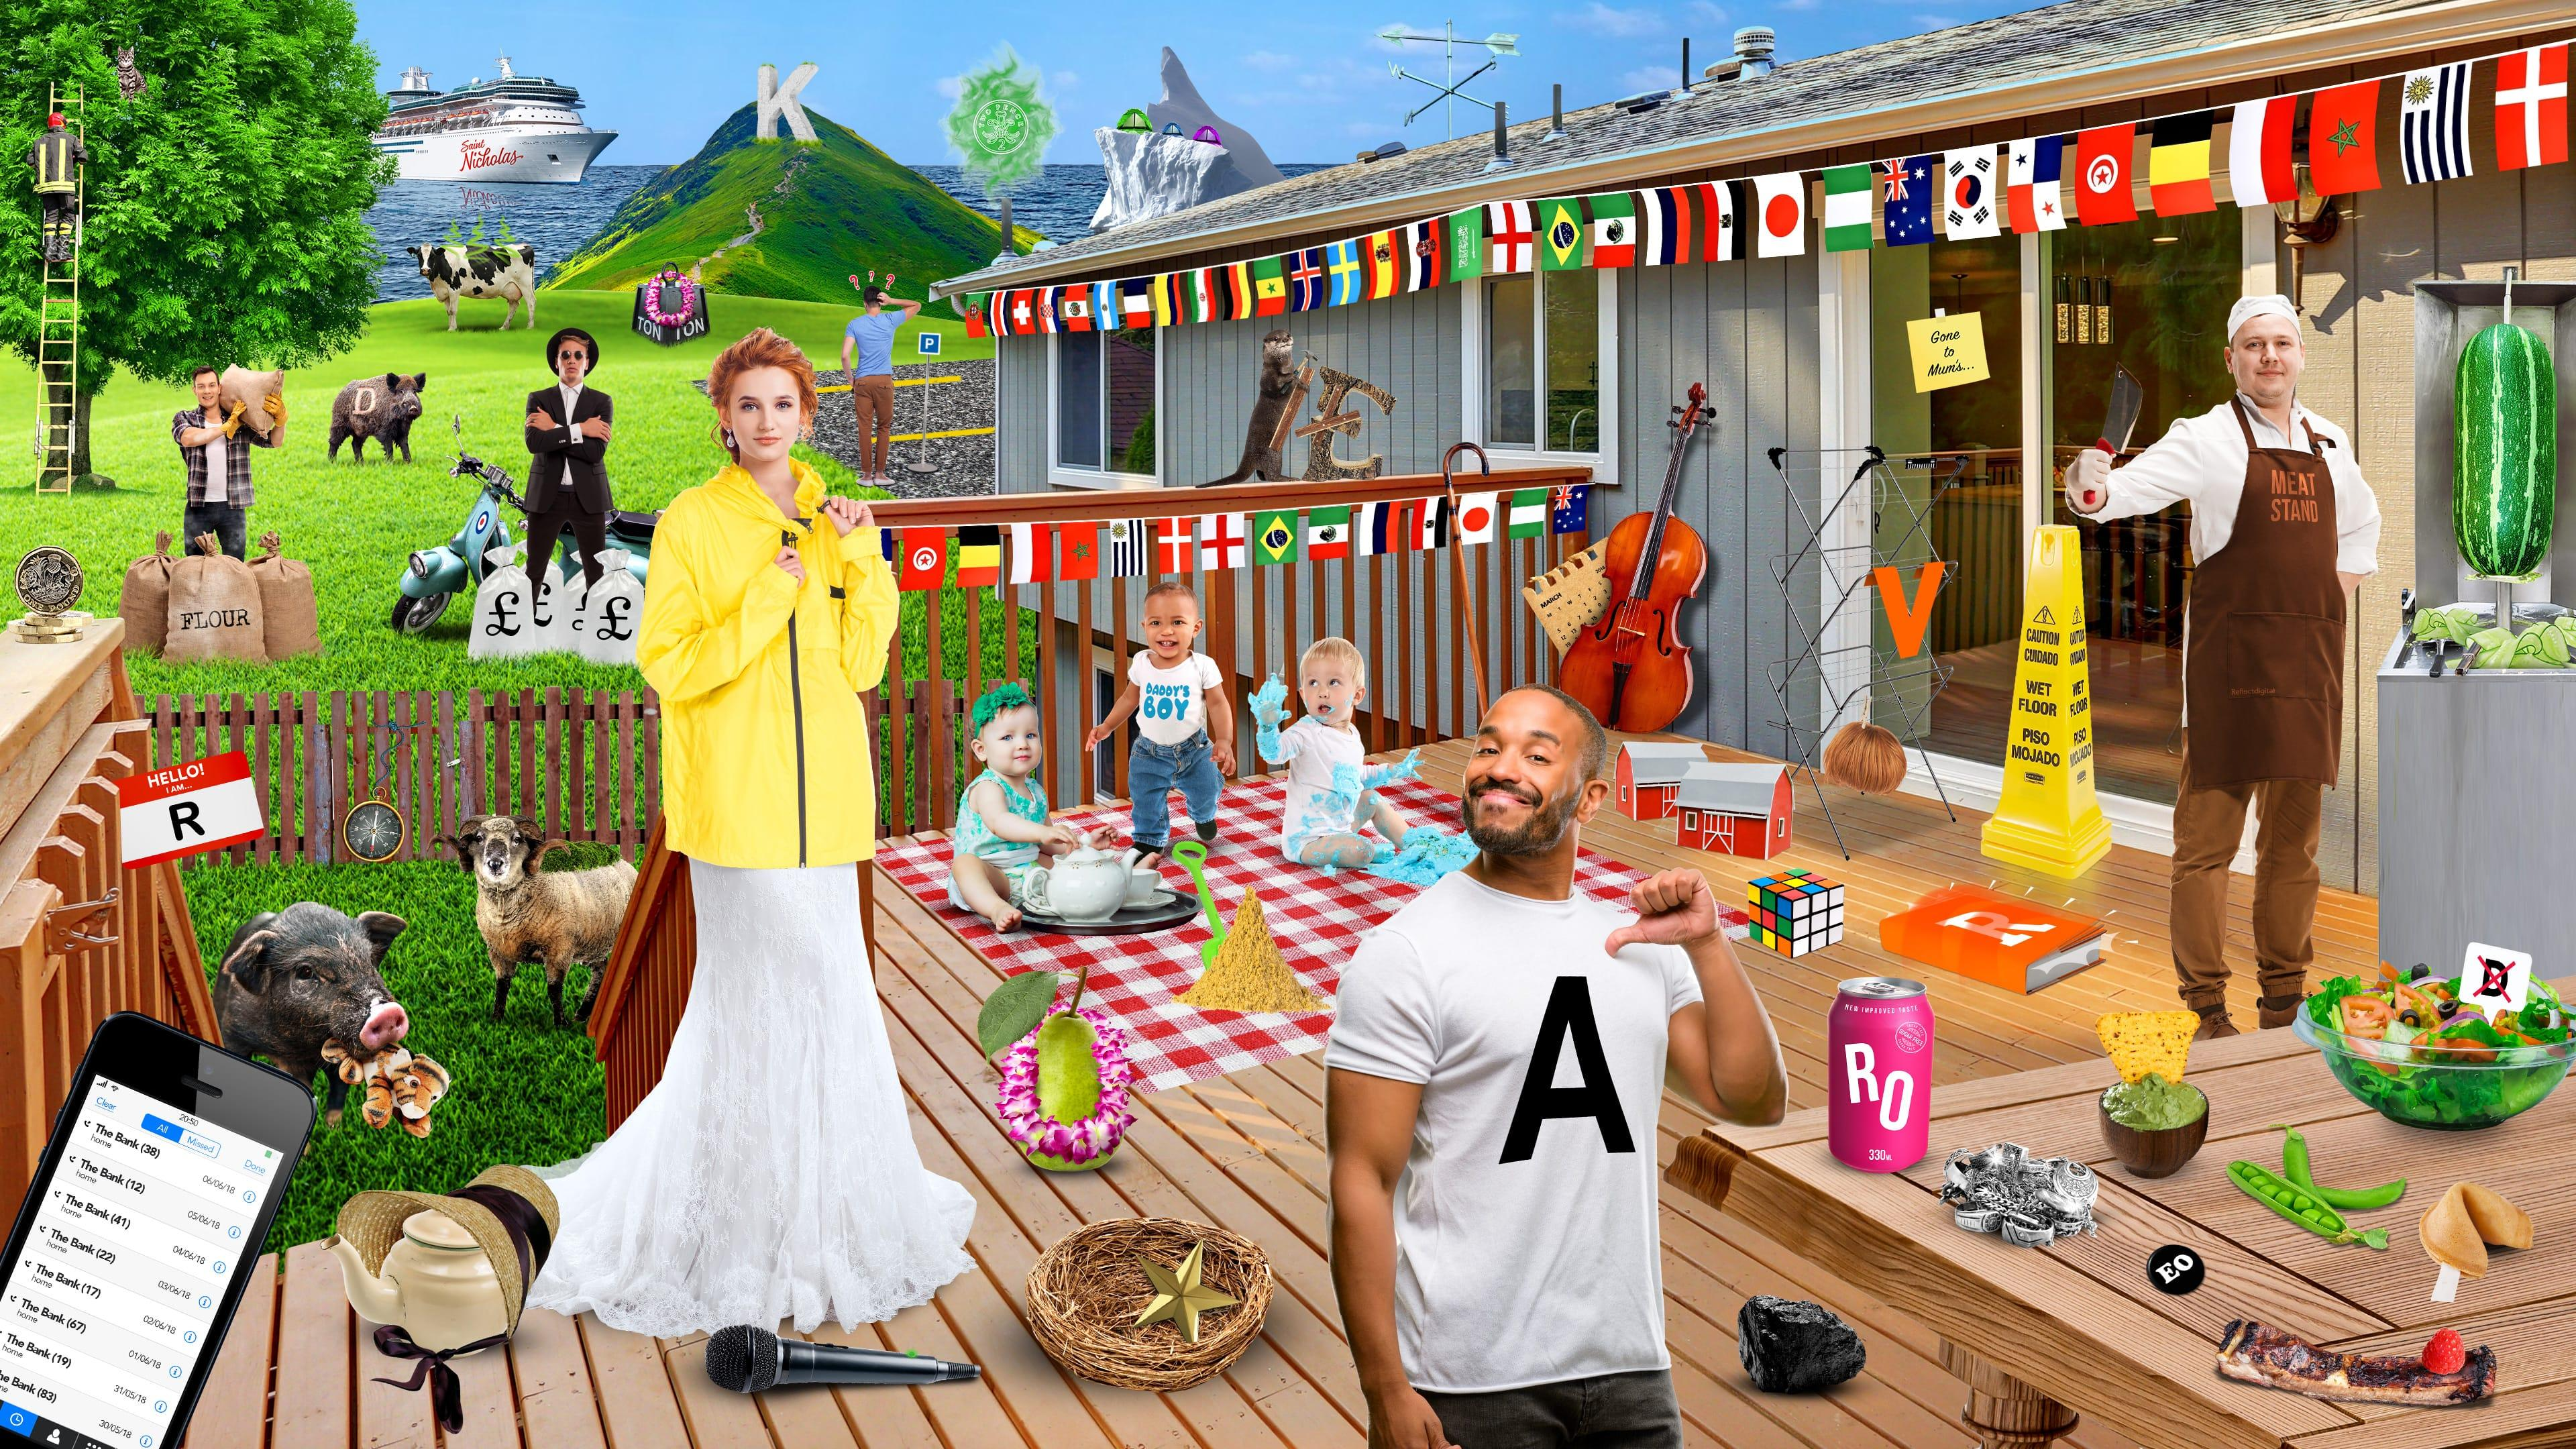 Find 50 World Cup Players, a scene with several clues, from babies on a blanket, to animals, to microphones etc